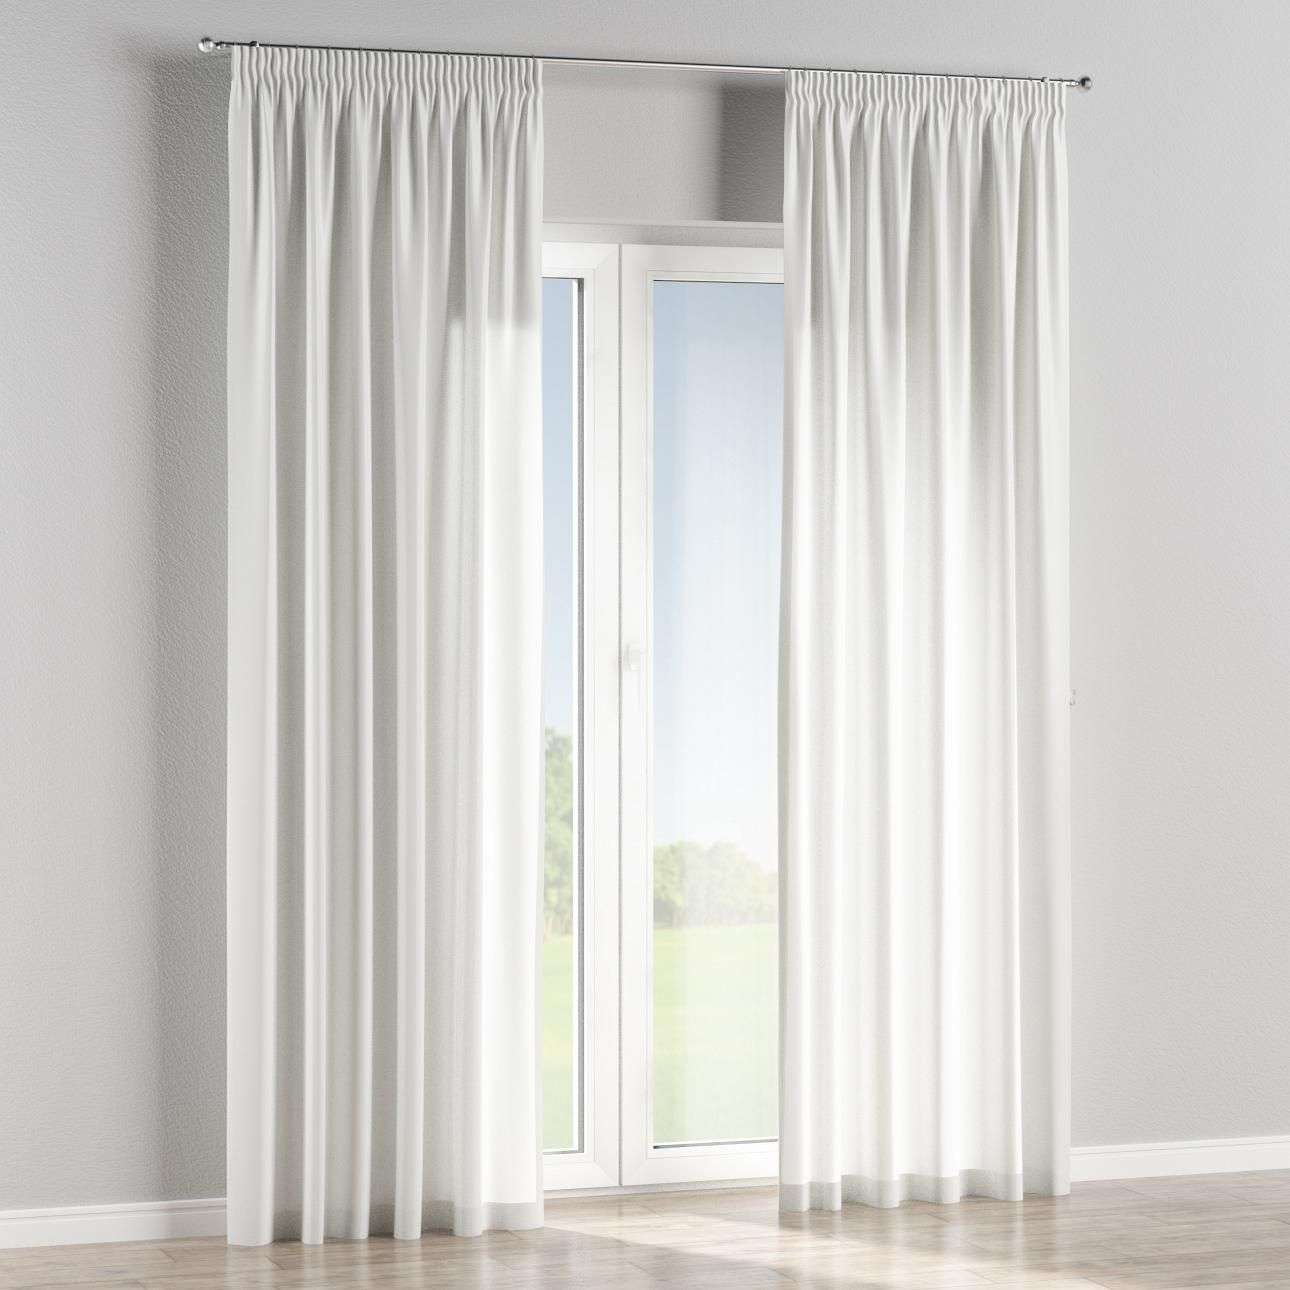 Pencil pleat curtains in collection Norge, fabric: 140-87